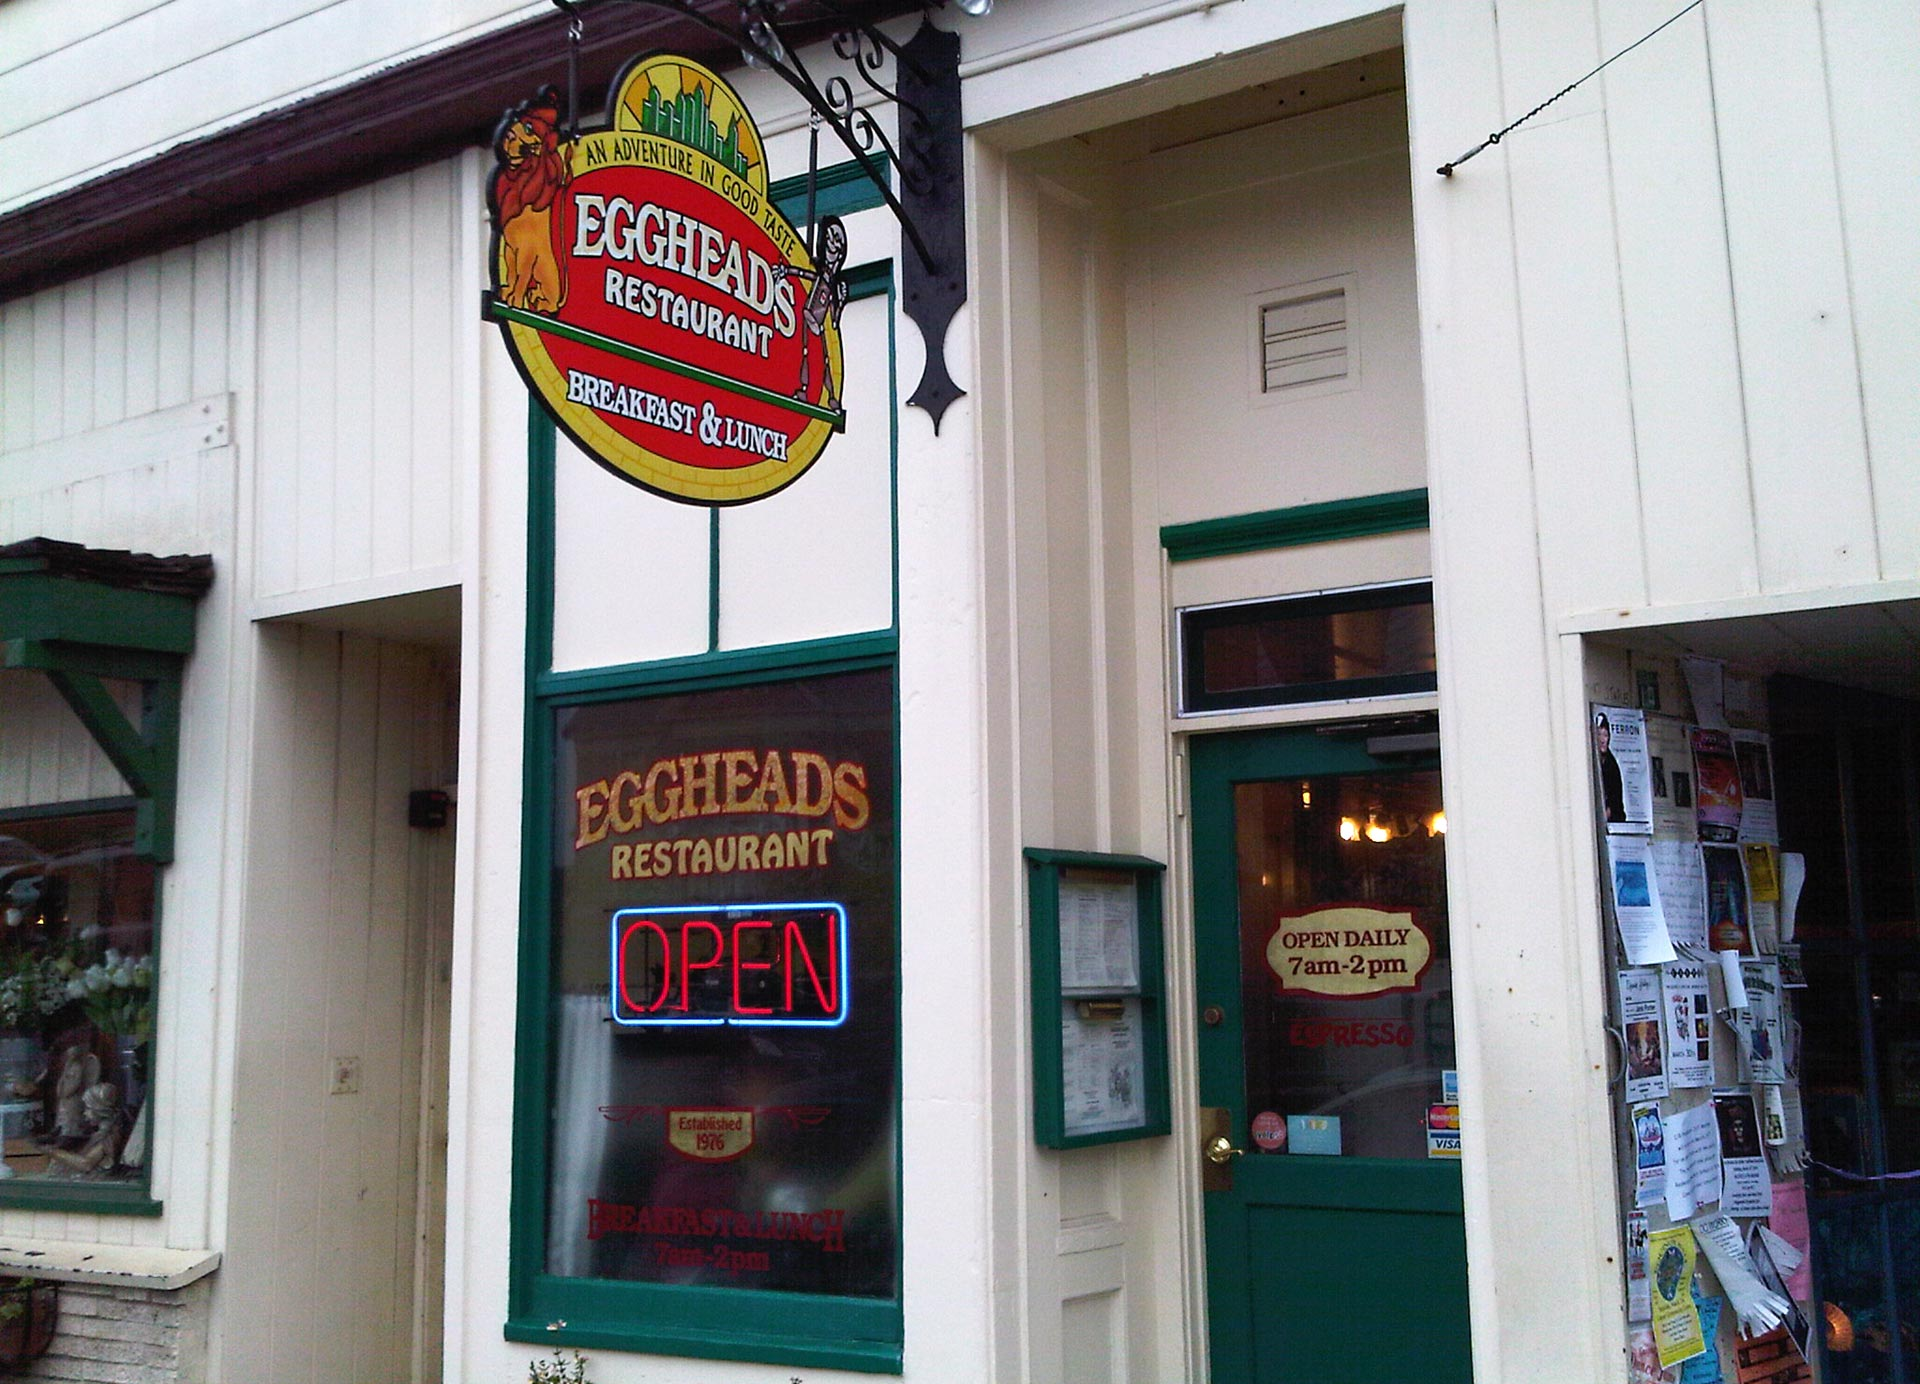 Eggheads restaurant in Fort Bragg says it will continue to serve on paper as long as the Stage 3 water emergency is in effect.